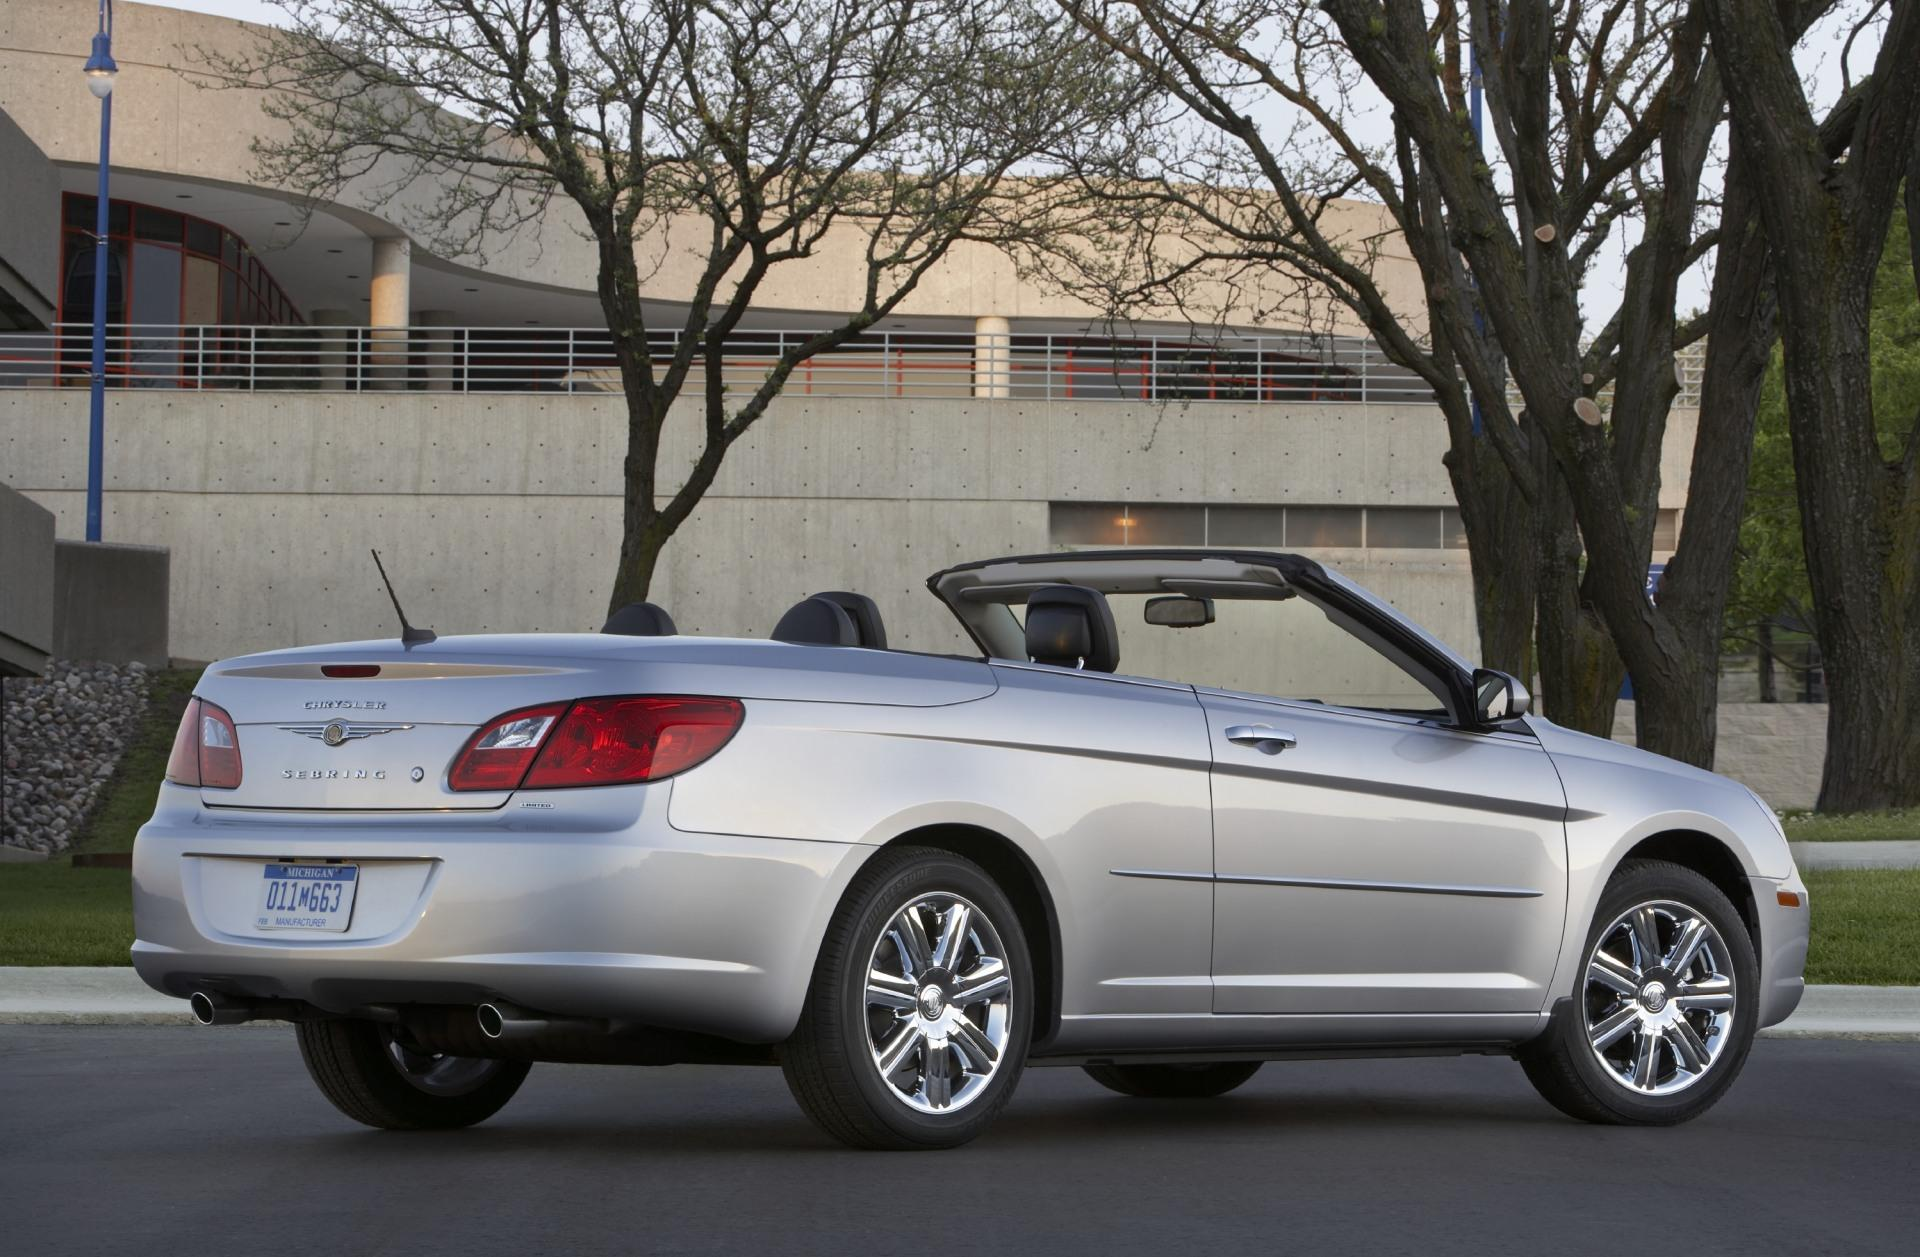 2010 chrysler sebring convertible news and information. Black Bedroom Furniture Sets. Home Design Ideas